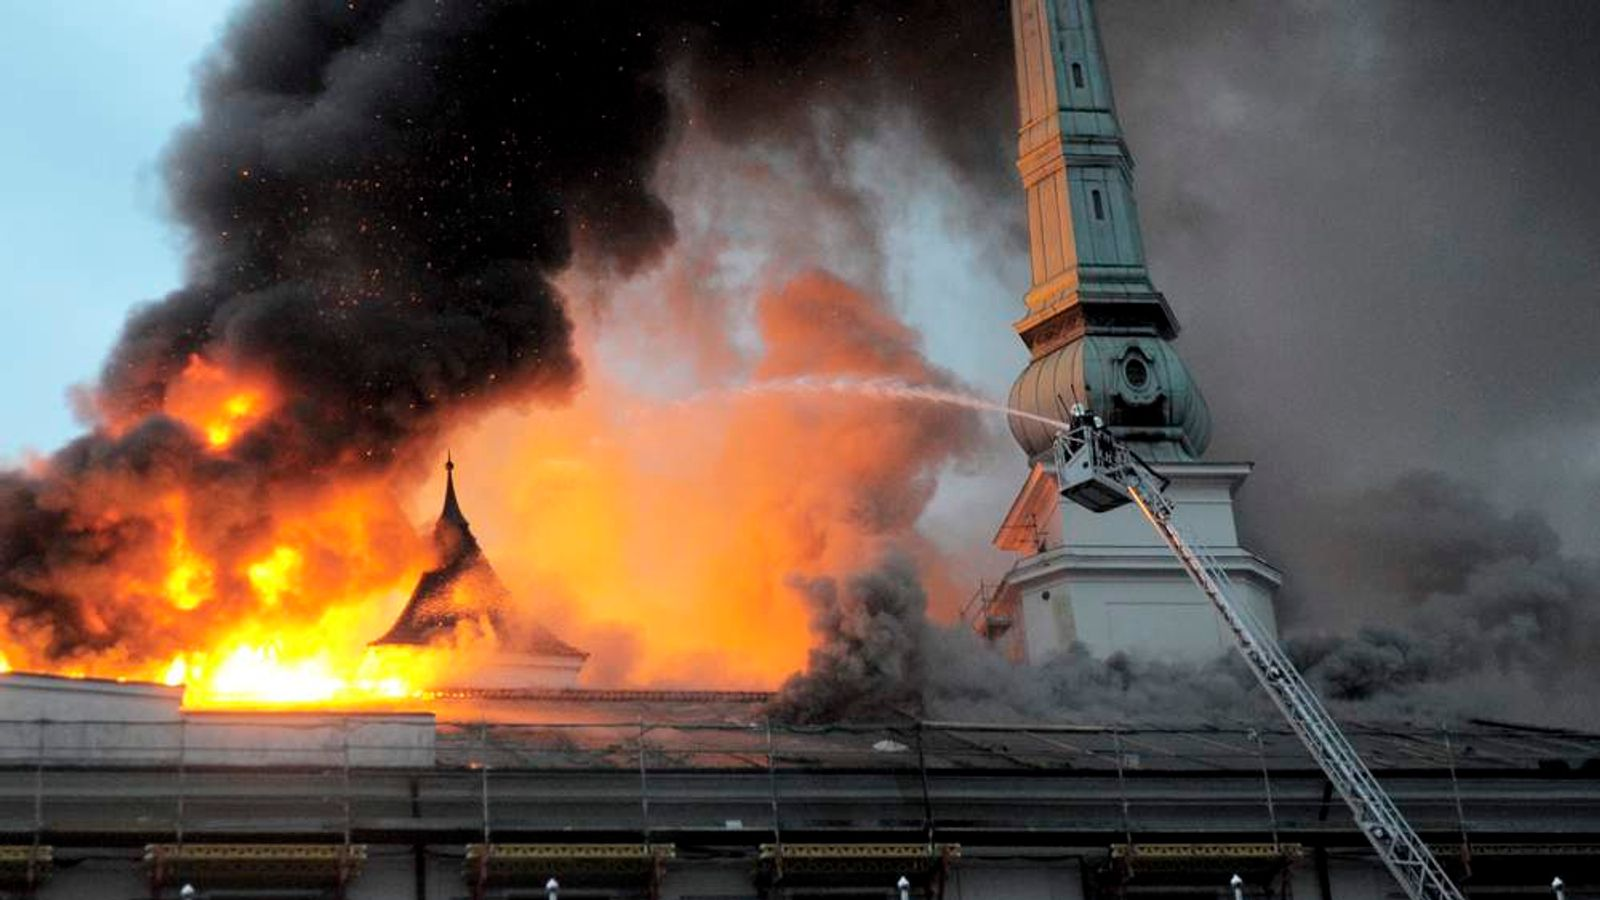 Firefighters try to douse a fire at the Riga castle